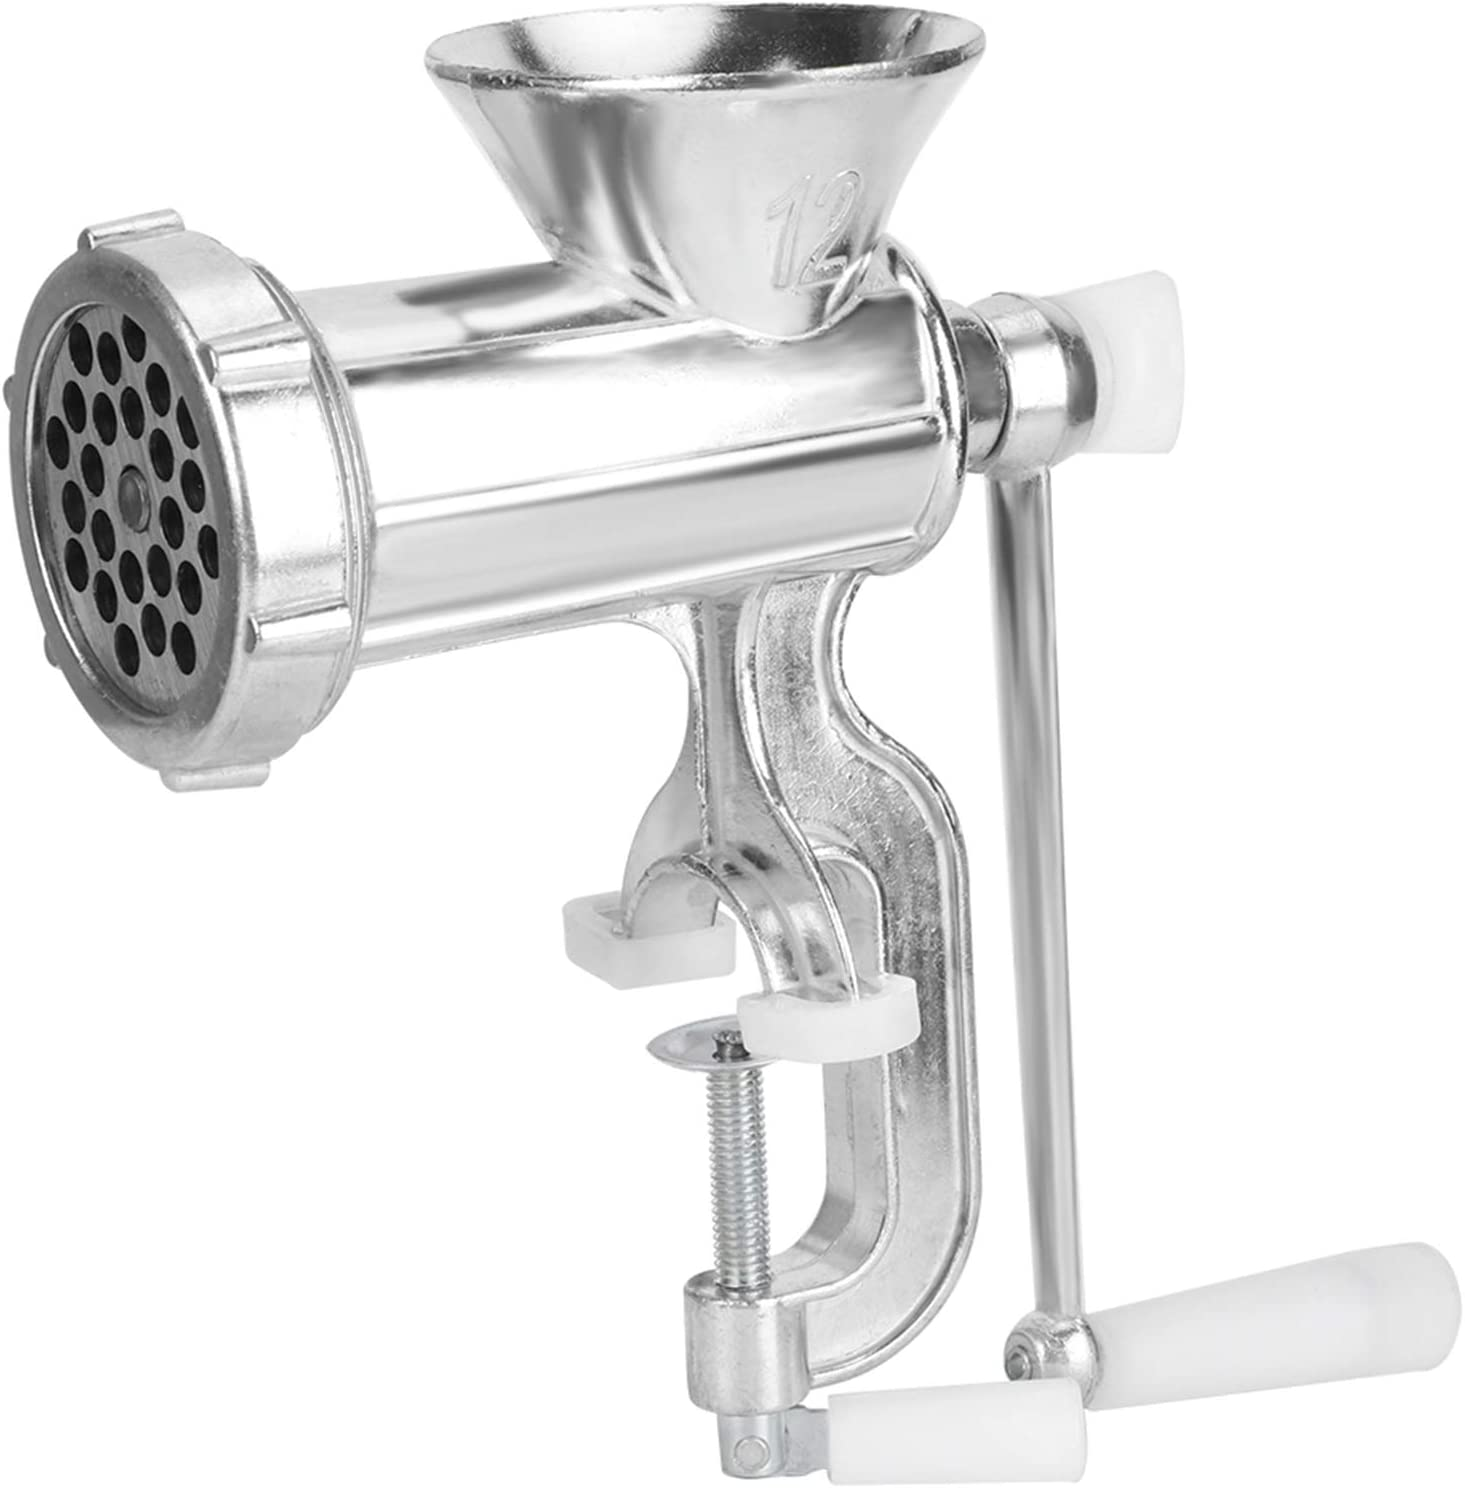 Meat Grinder Manual Multifunction Free shipping New Chopper Mincer Sa 5% OFF